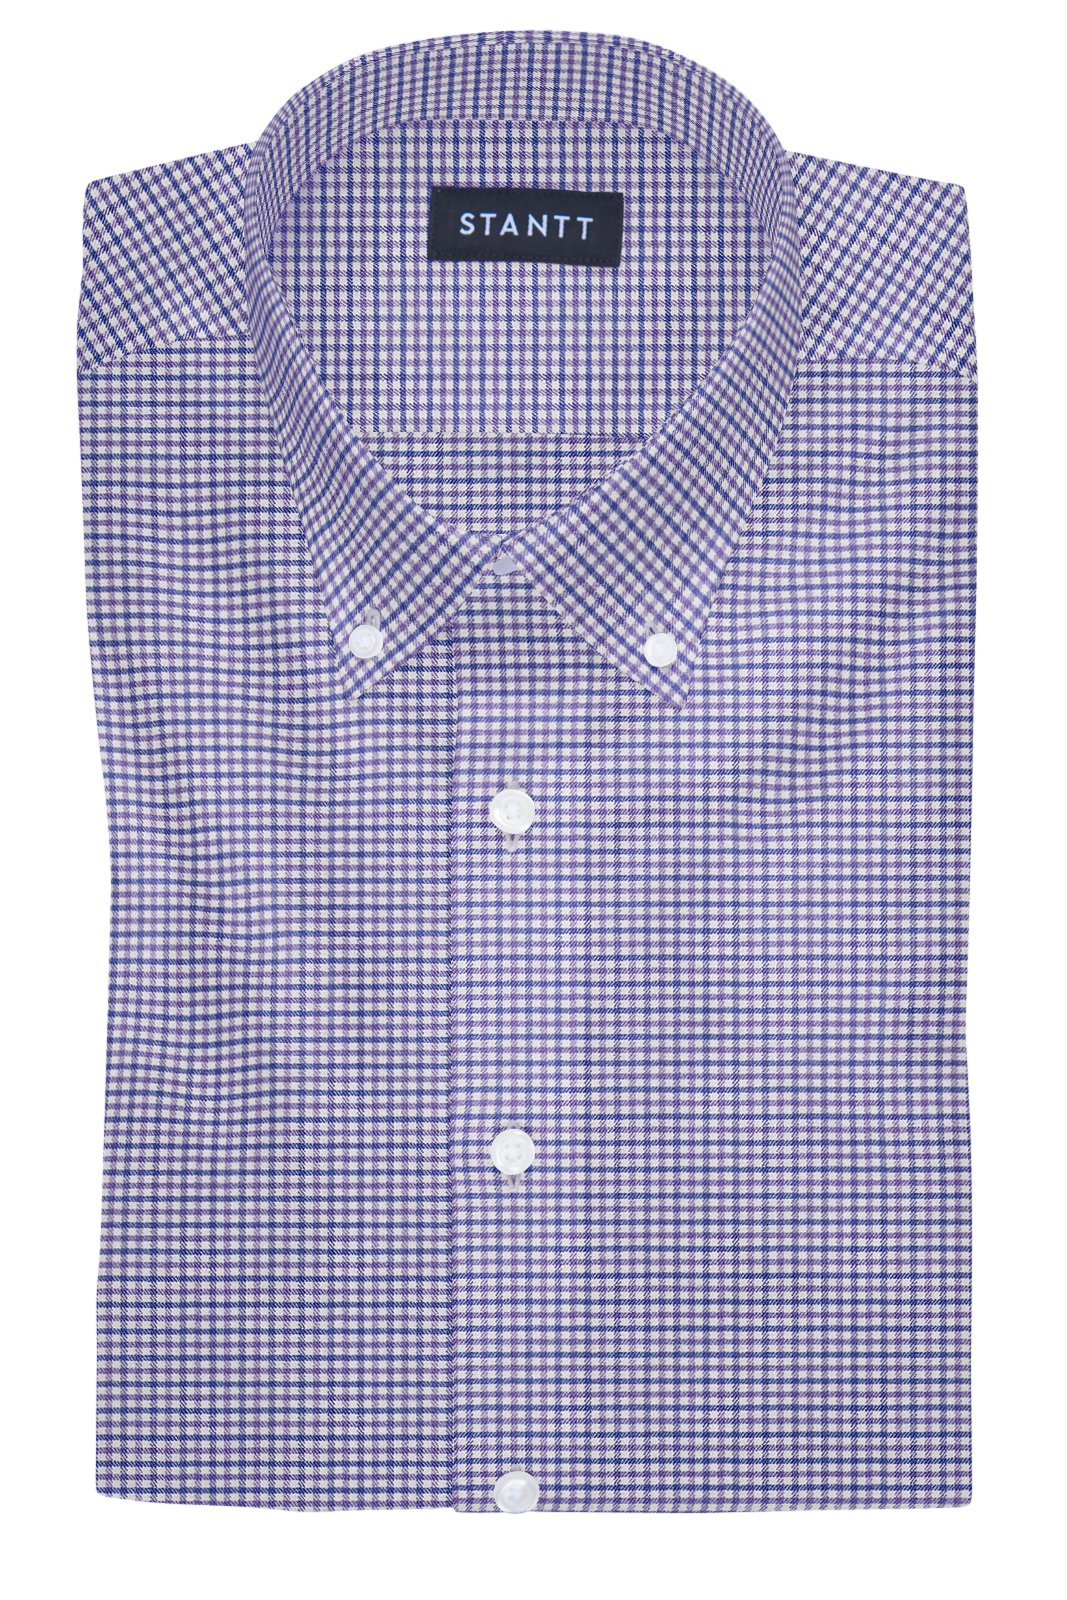 Performance Purple and Blue Mini Gingham: Button-Down Collar, Barrel Cuff